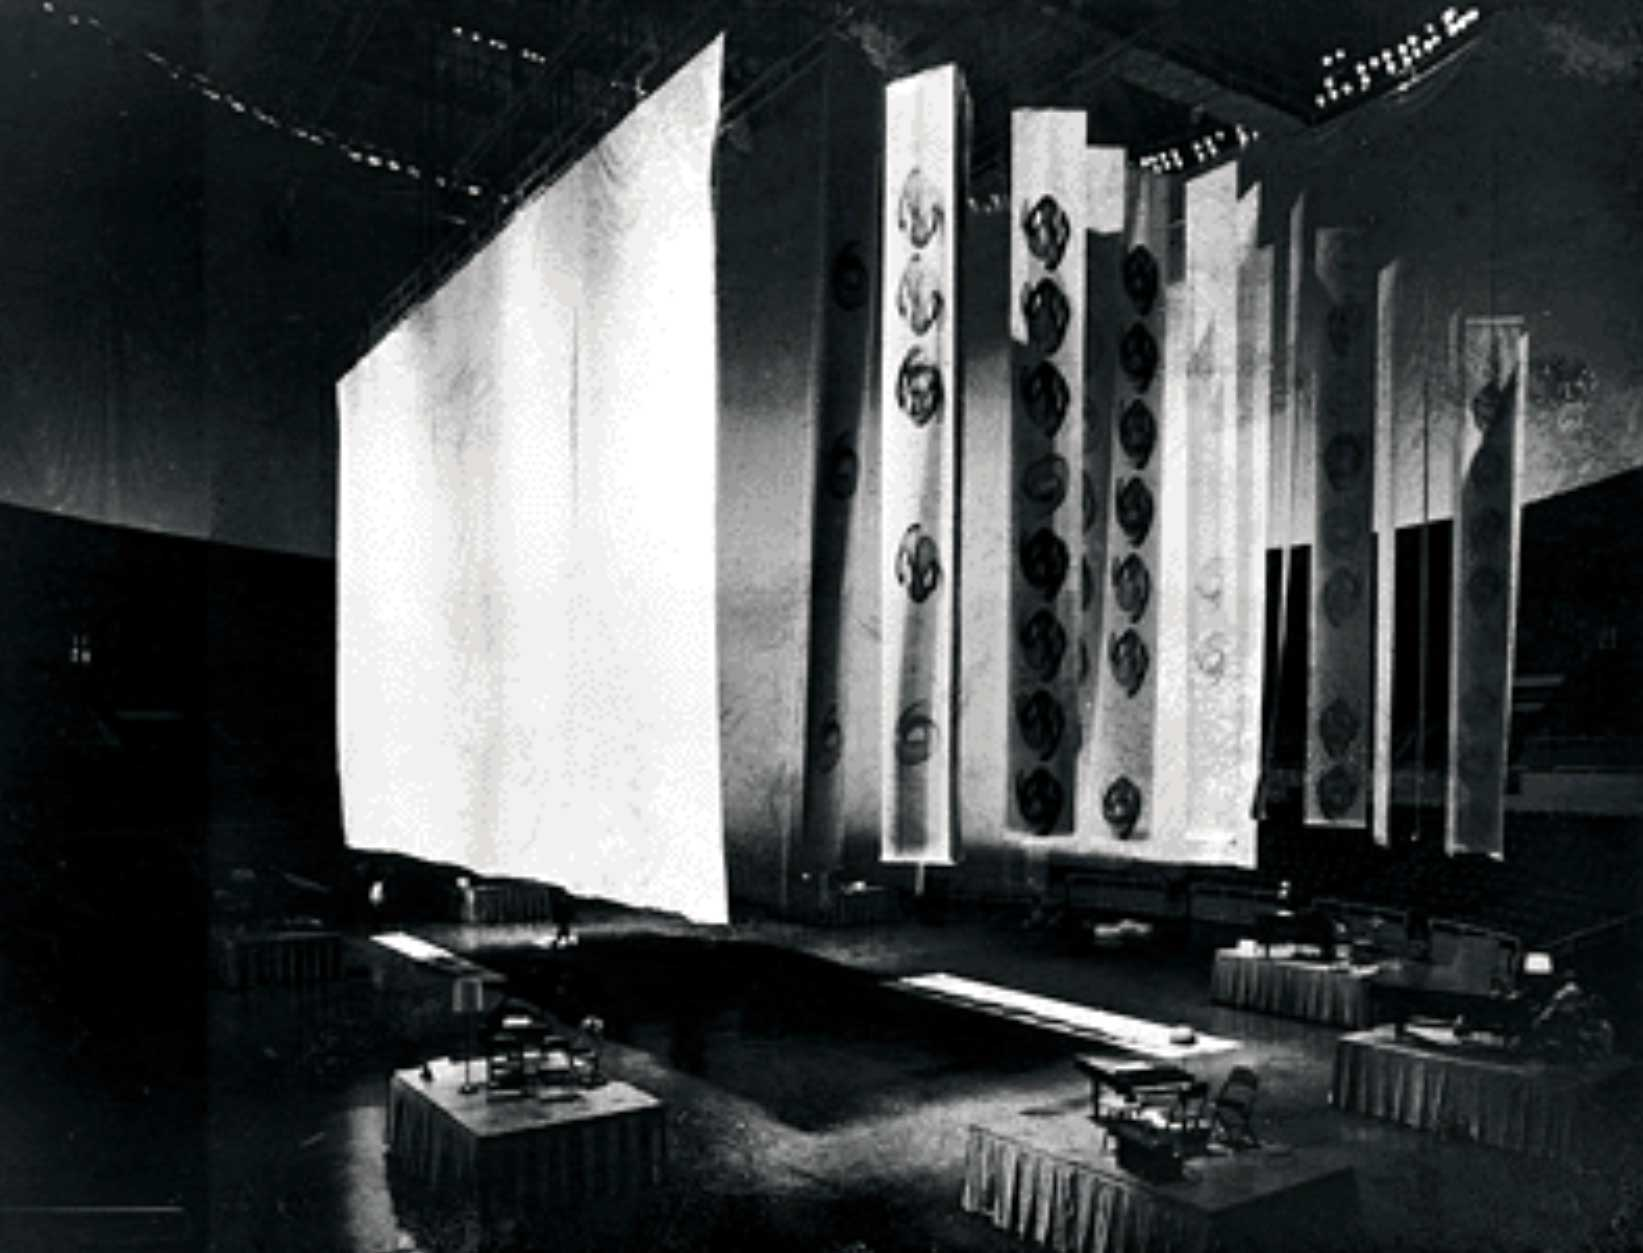 A picture of the Assembly Hall before the performance. You notice the banner for graphics and video projections.